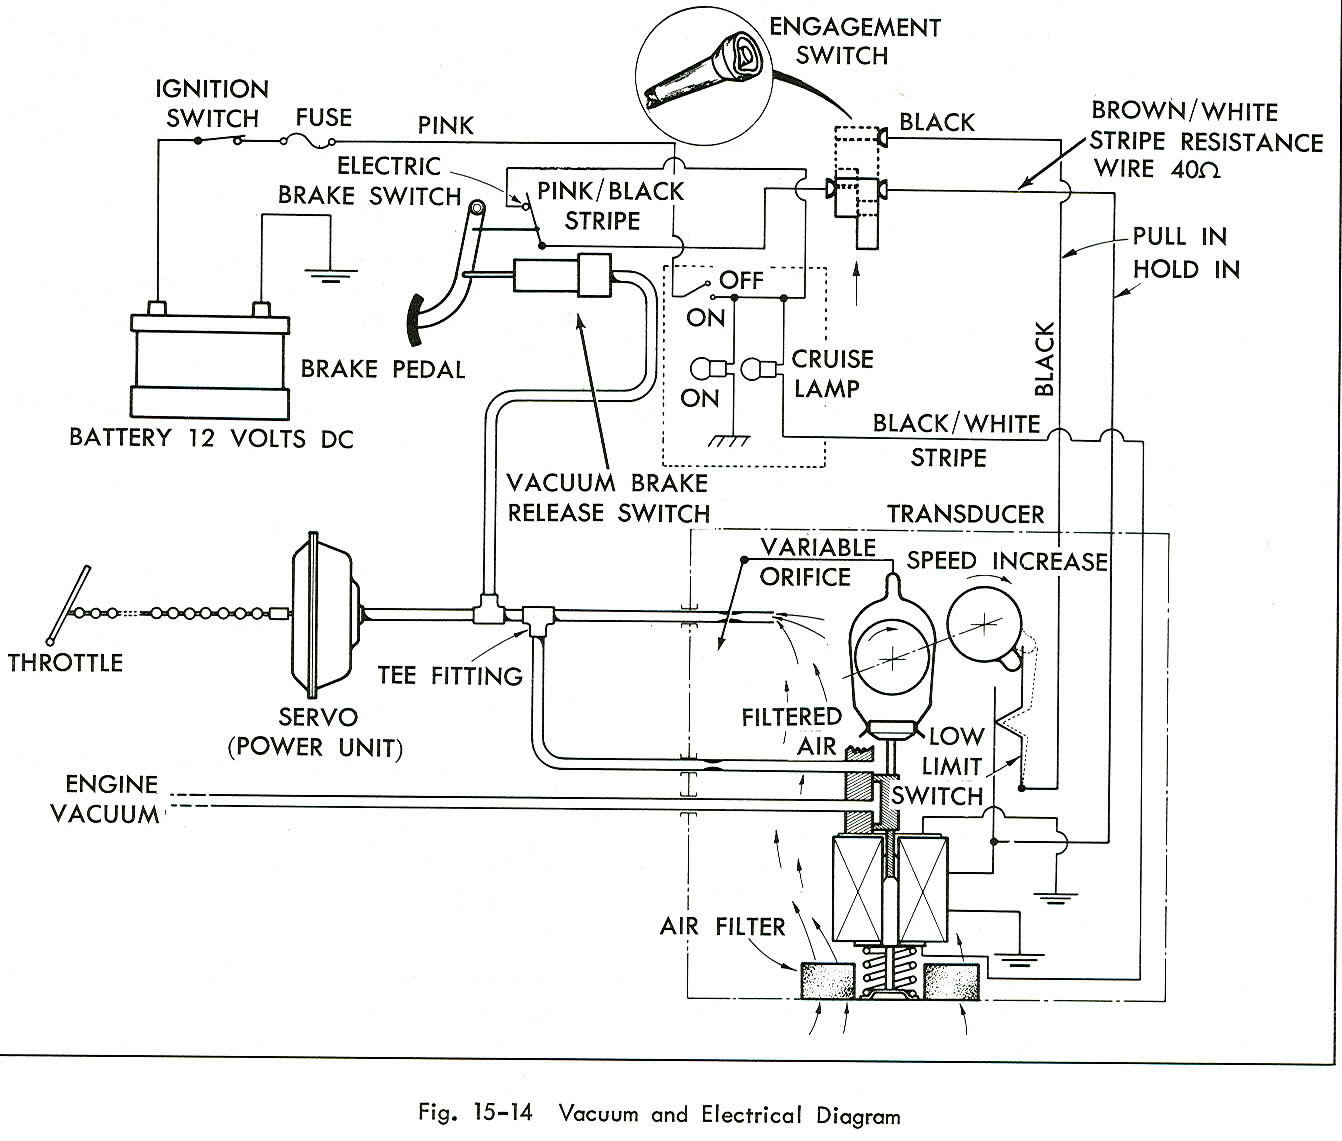 70 Cadillac 1970 Dodge Challenger Alternator Wiring Illustration Of Cruise Vacuum Electric Diagram